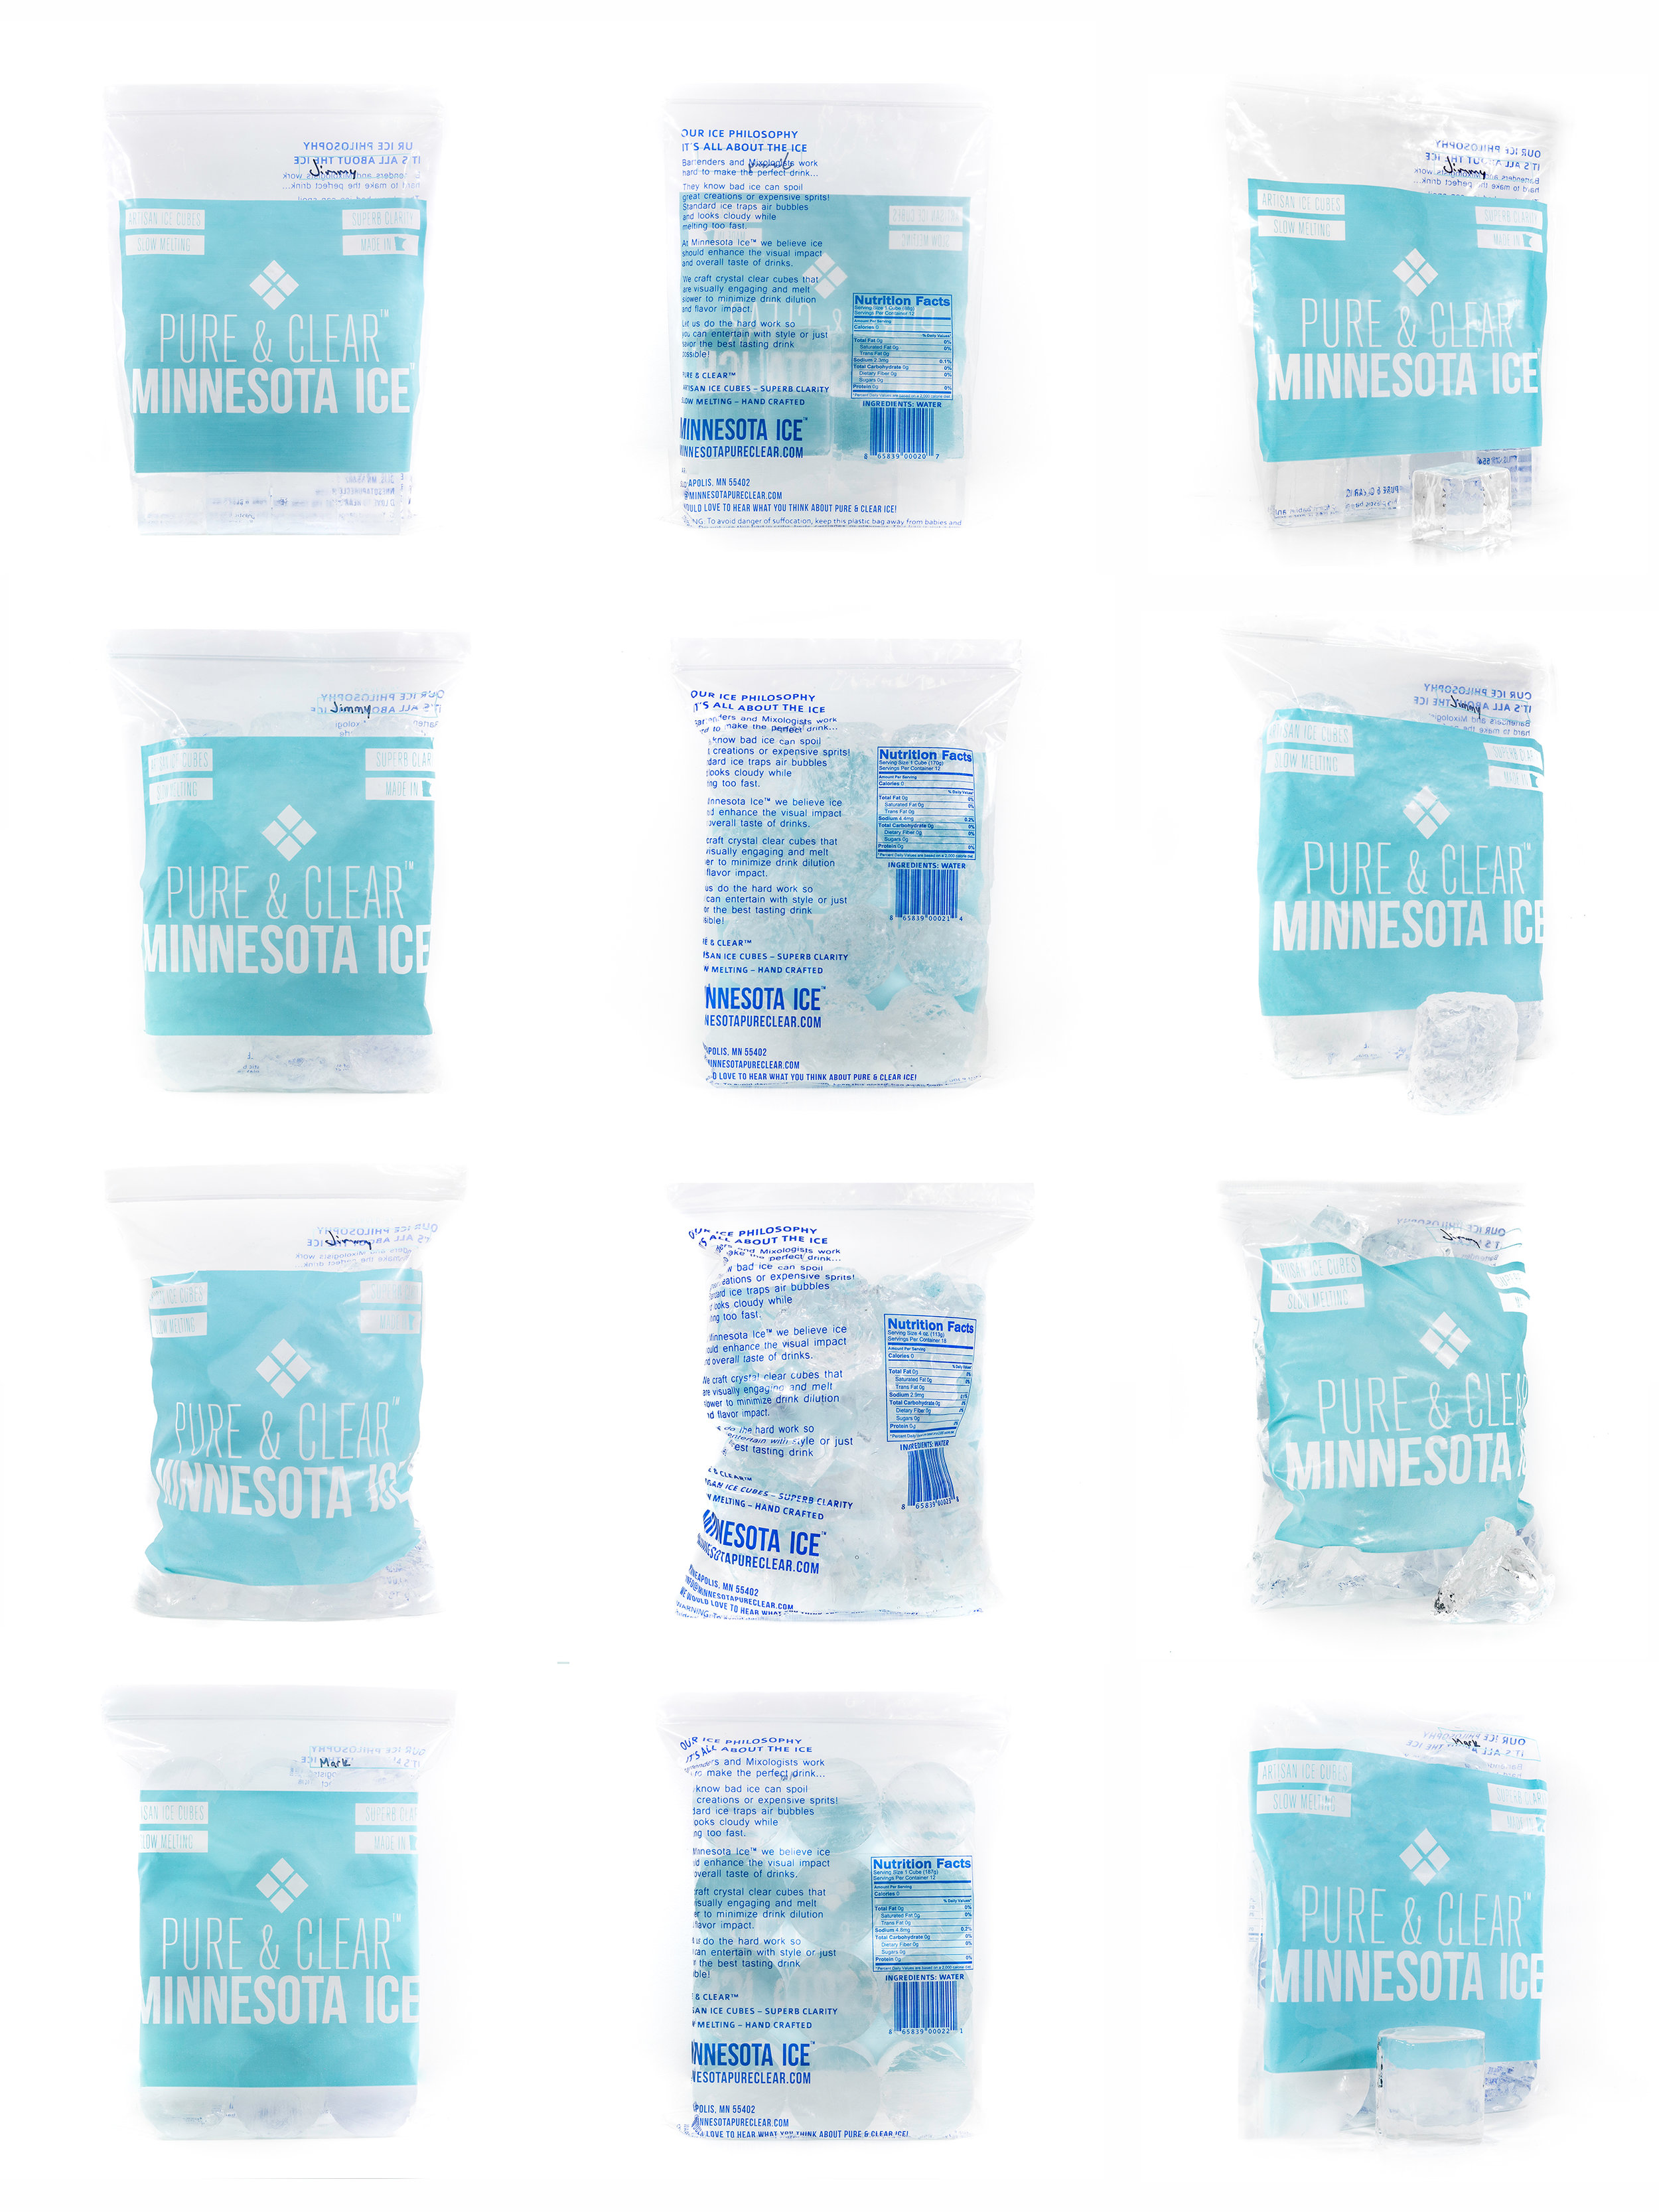 Pure & Clear Product Images